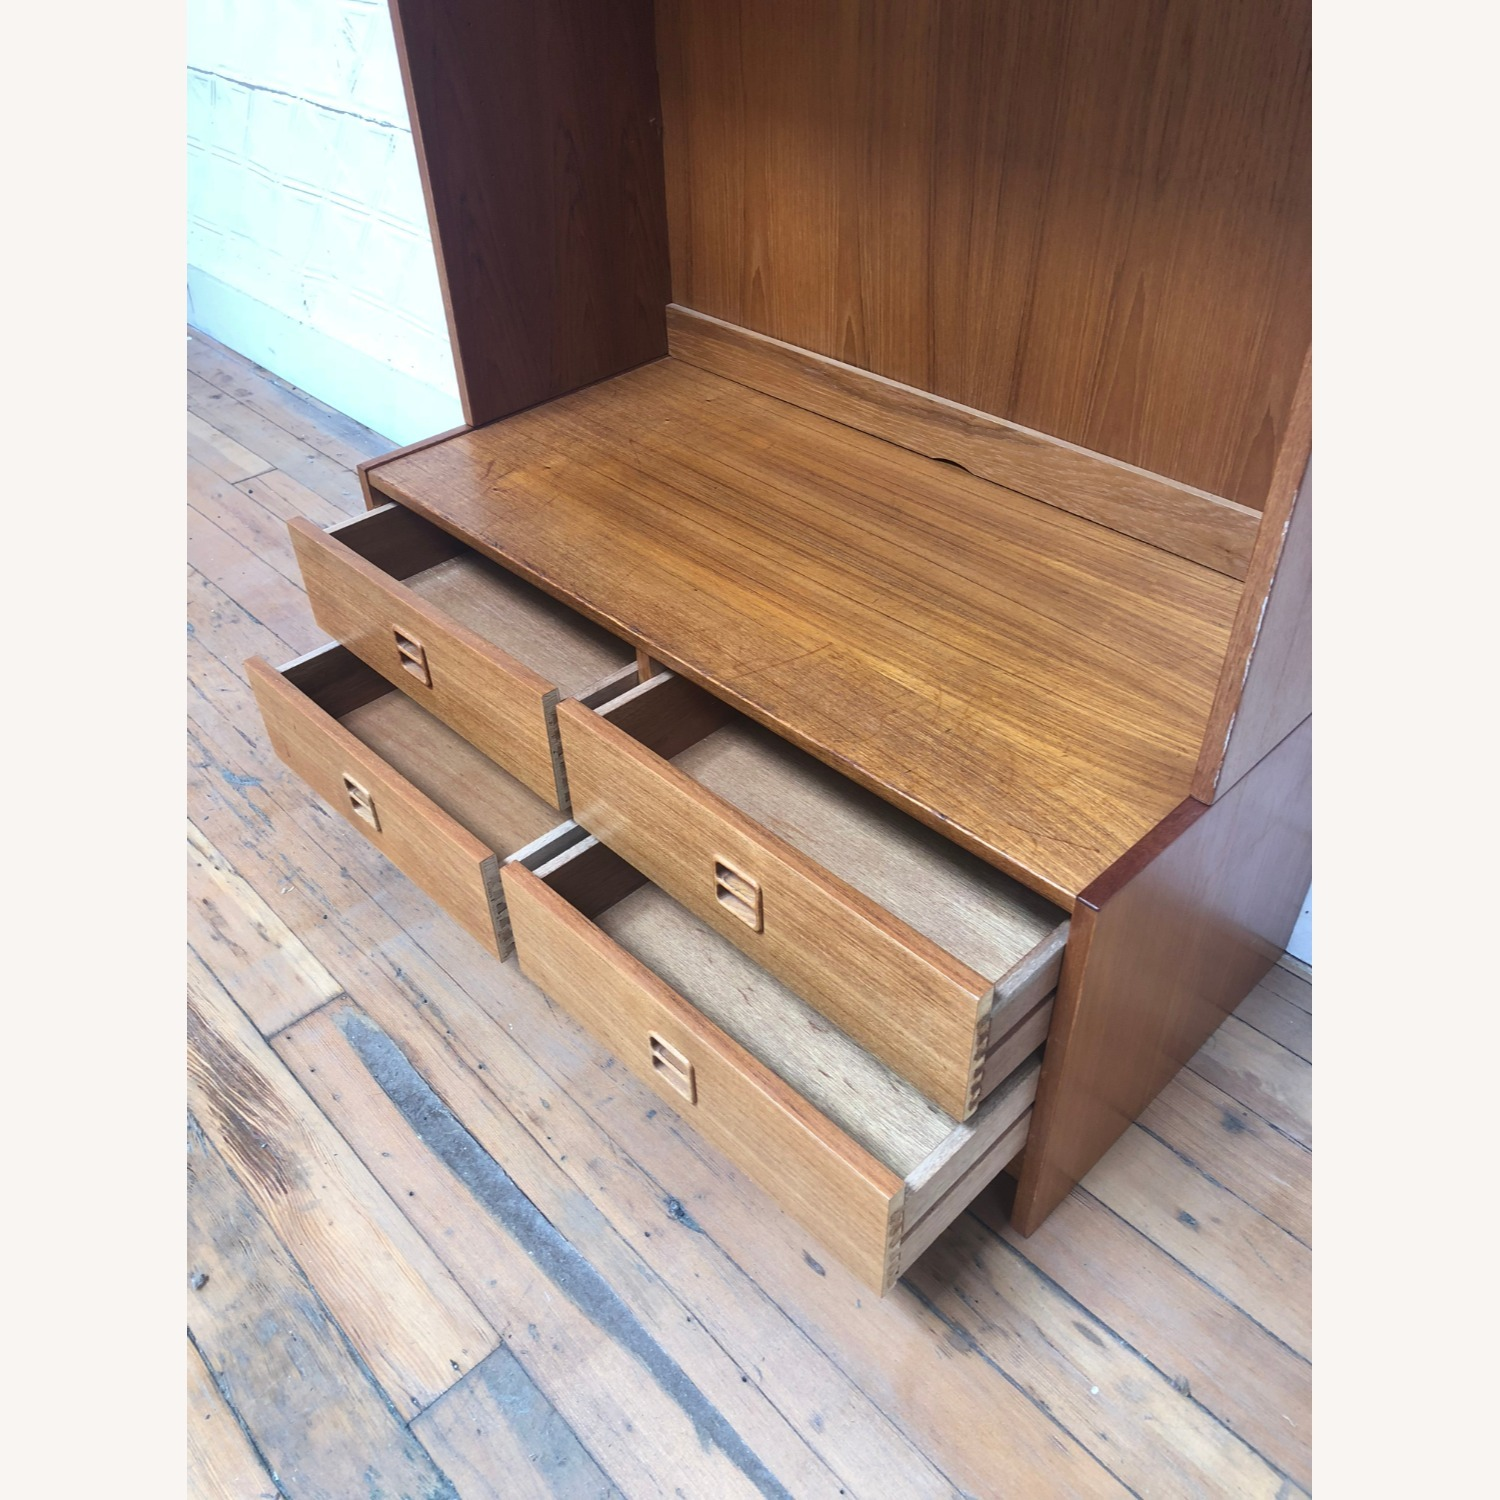 Danish Modern Shelving Unit with Four Drawers - image-8